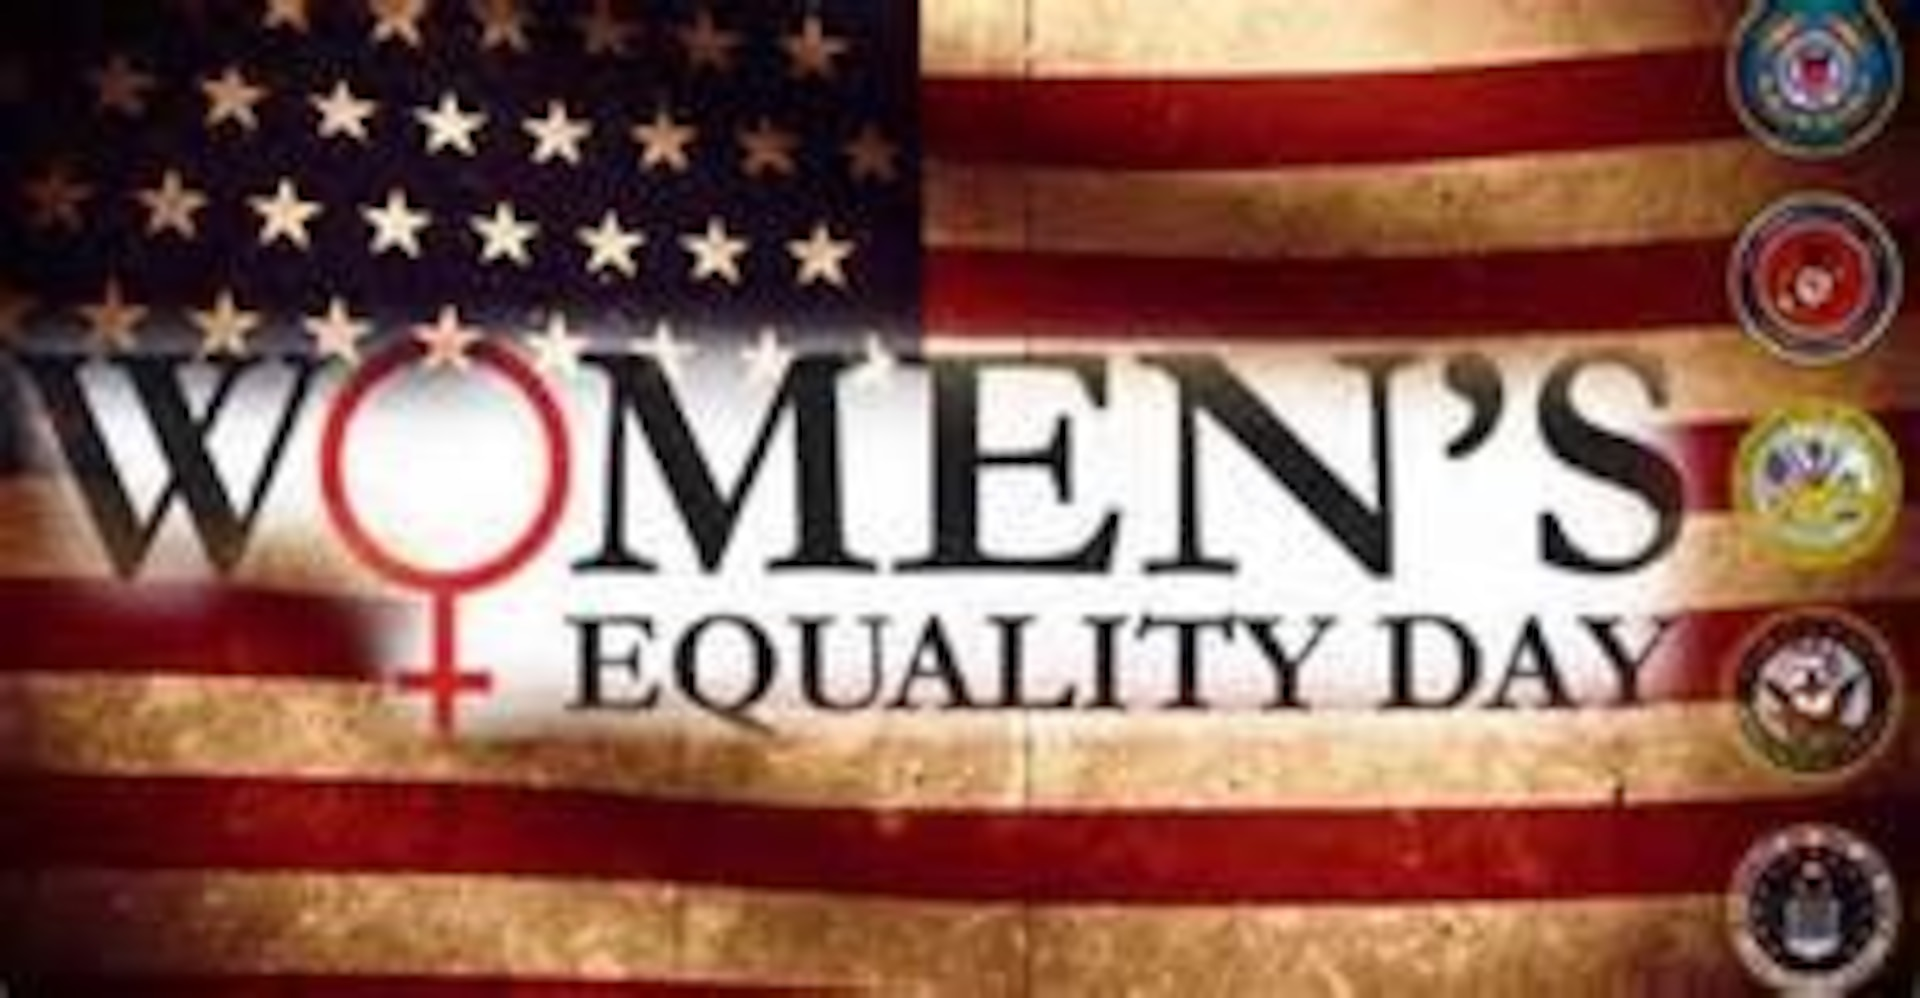 Each year, since 1971, August 26 has been designated and celebrated in the United States as Women's Equality Day.